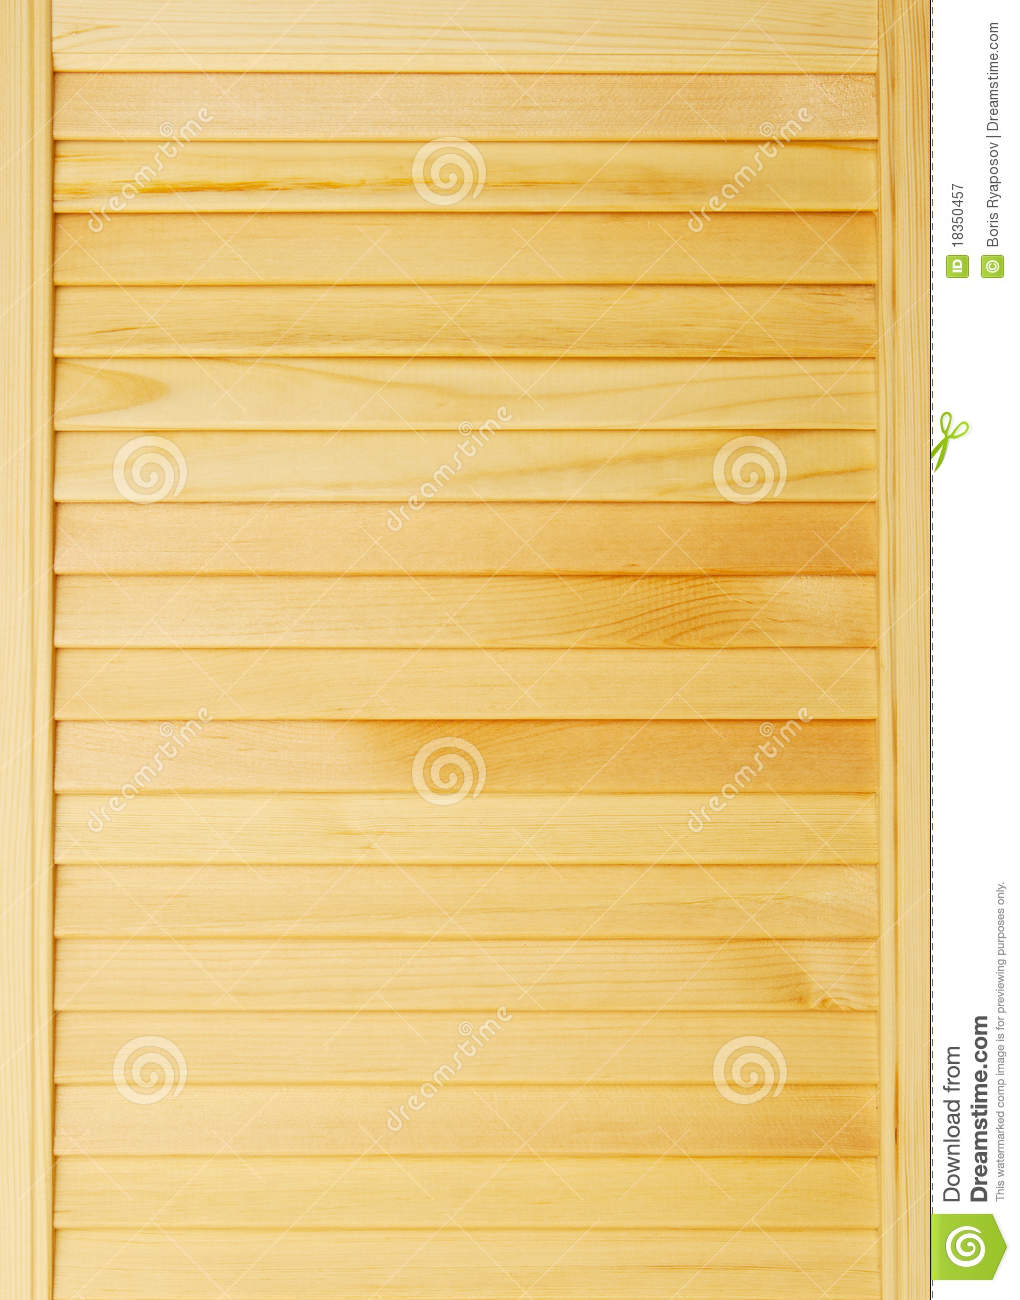 Brown Wooden Shutters : Light brown wooden shutters royalty free stock photography